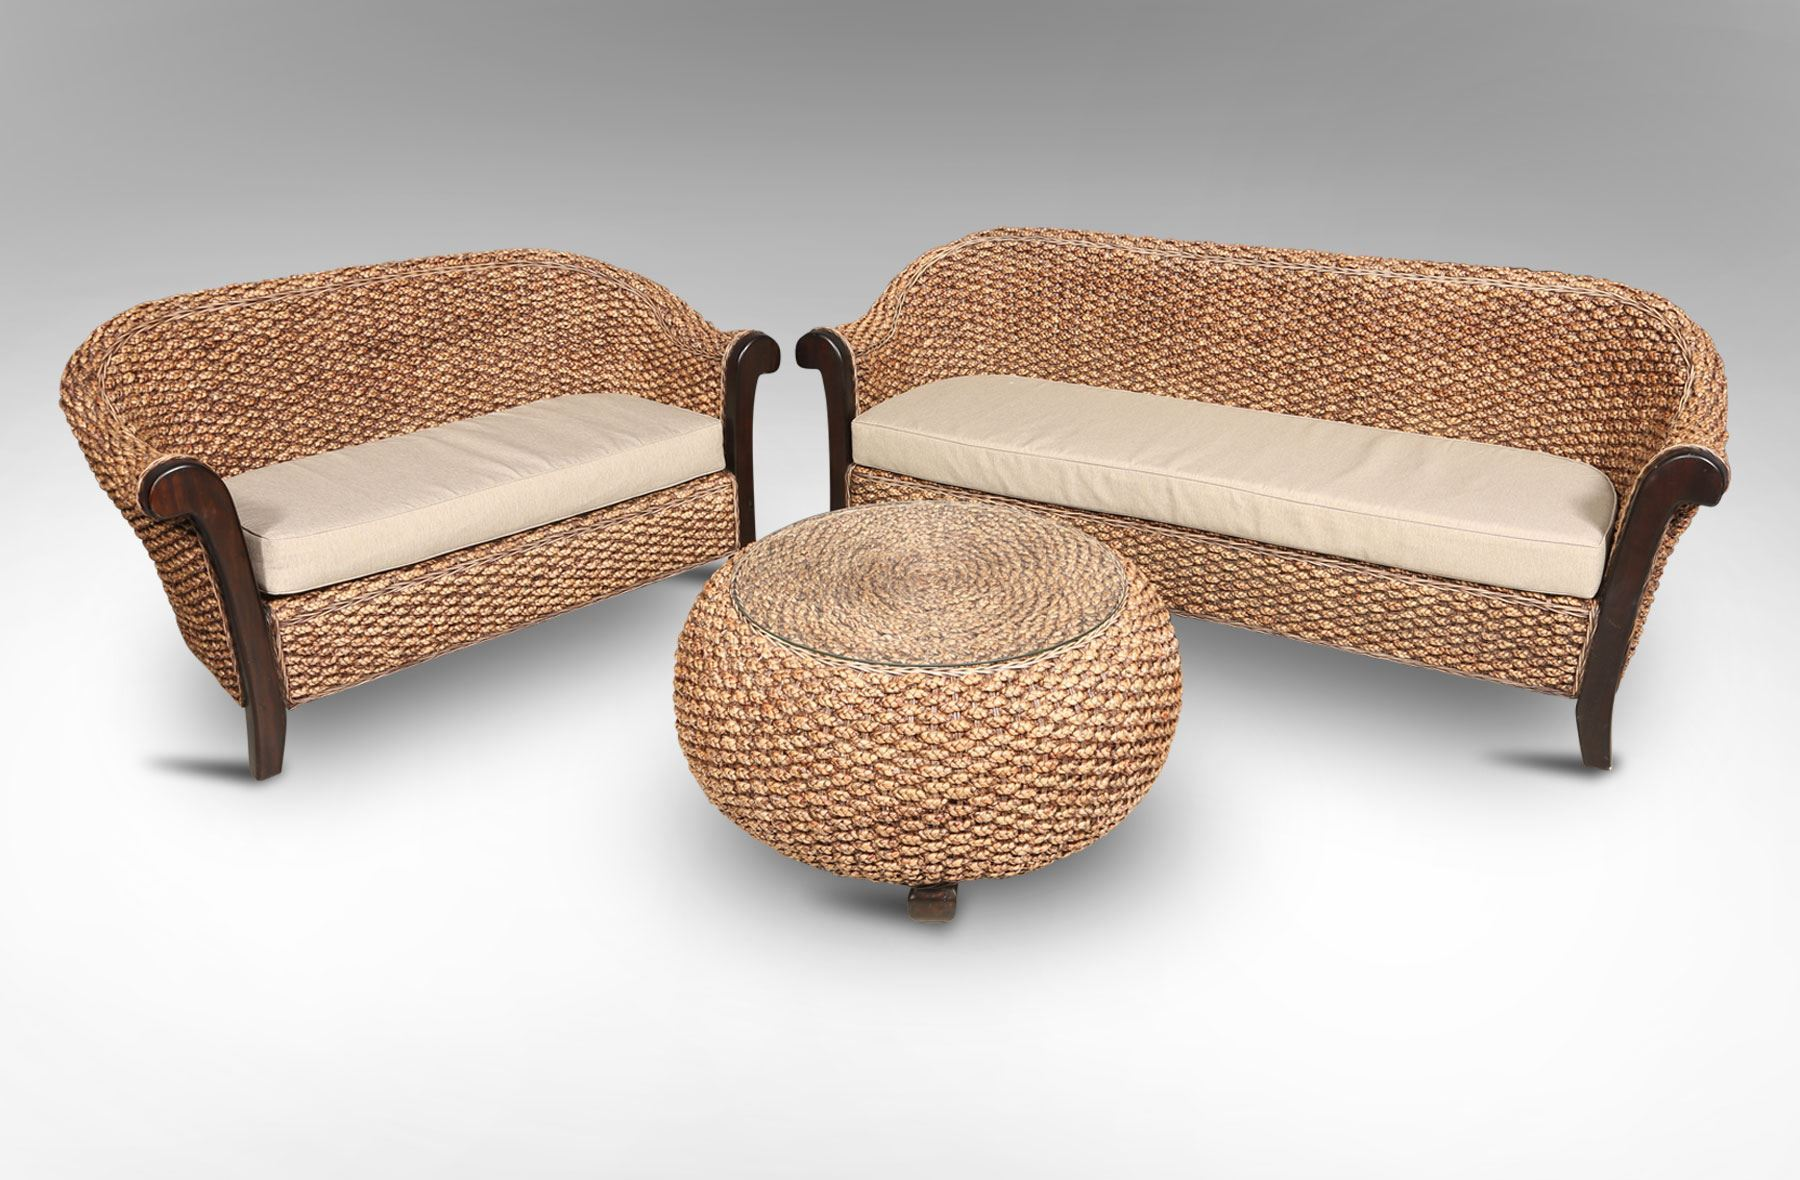 Picture Of Java Package   3 Seater + 2 Seater + C/Table Without Glass